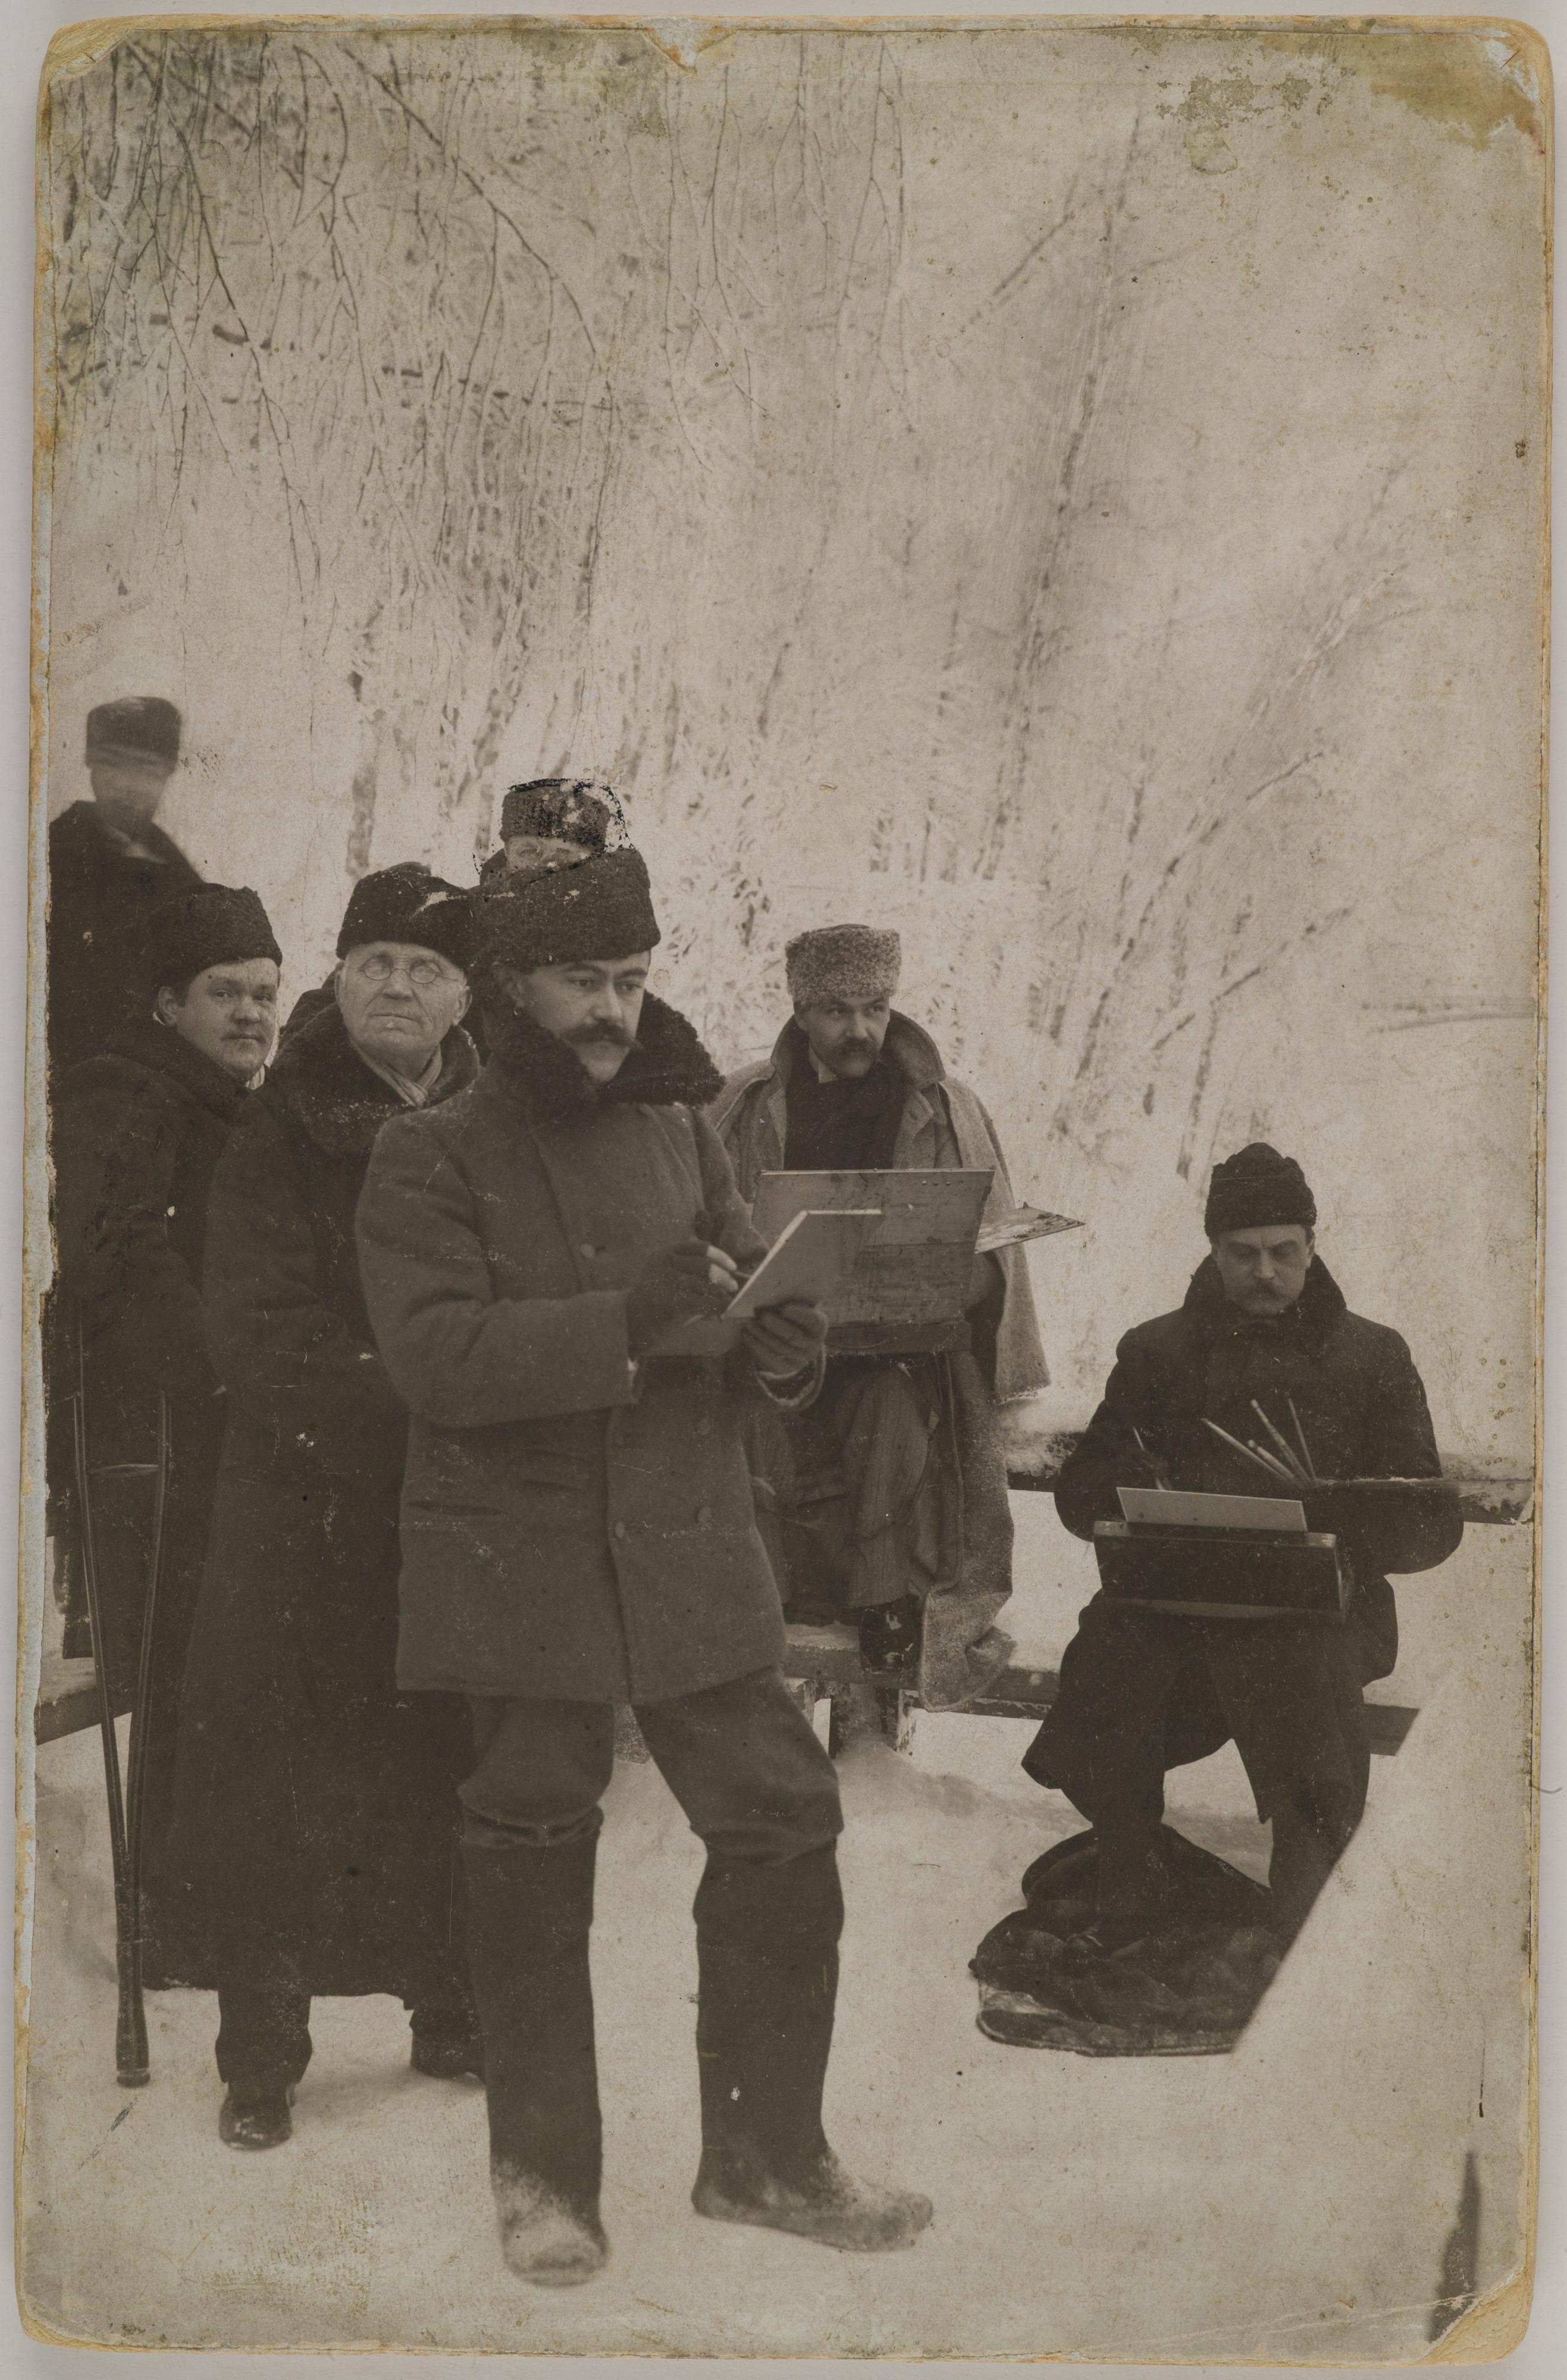 Axel Gallén, Louis Sparre and Albert Edelfelt painting at Imatra, 1893